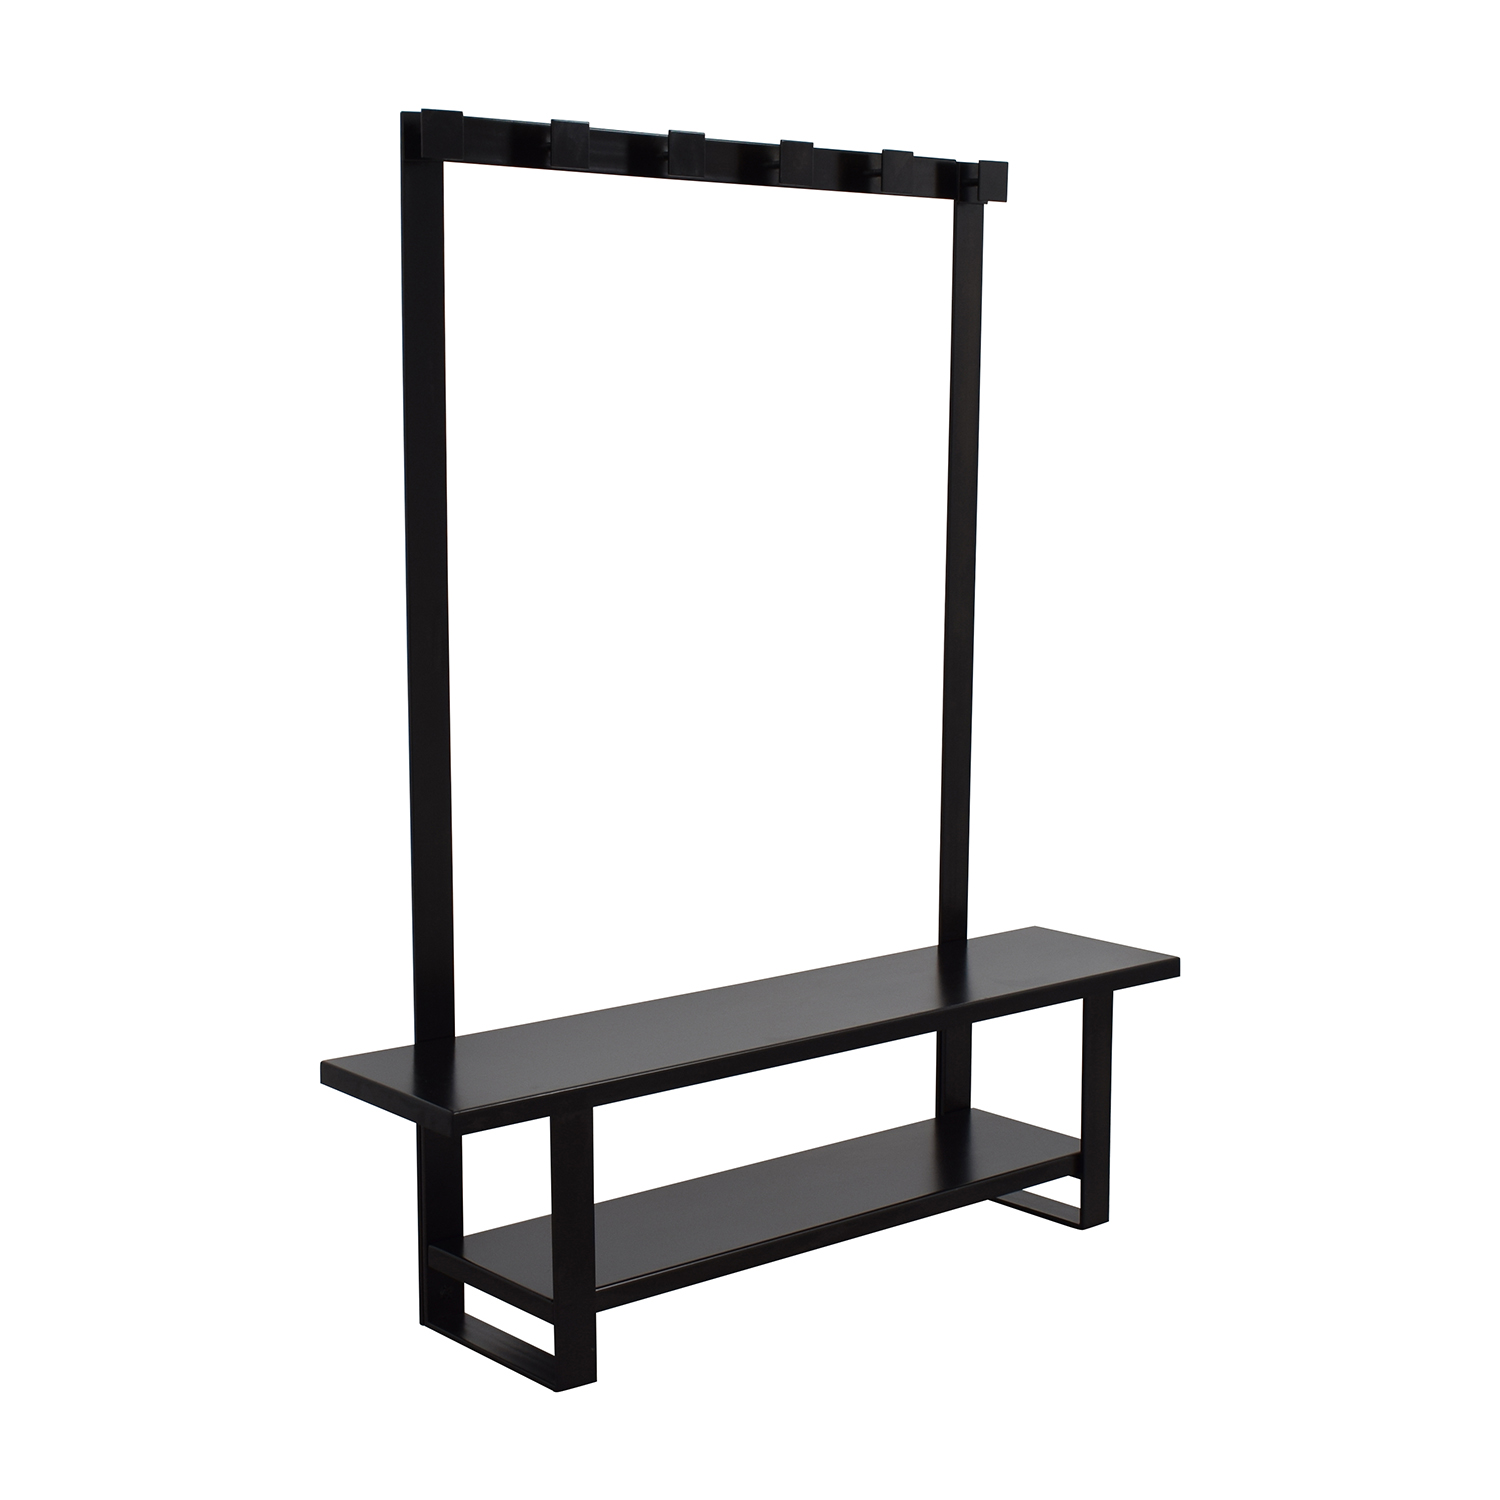 Crate and Barrel Crate & Barrel Entry Bench with Hooks used